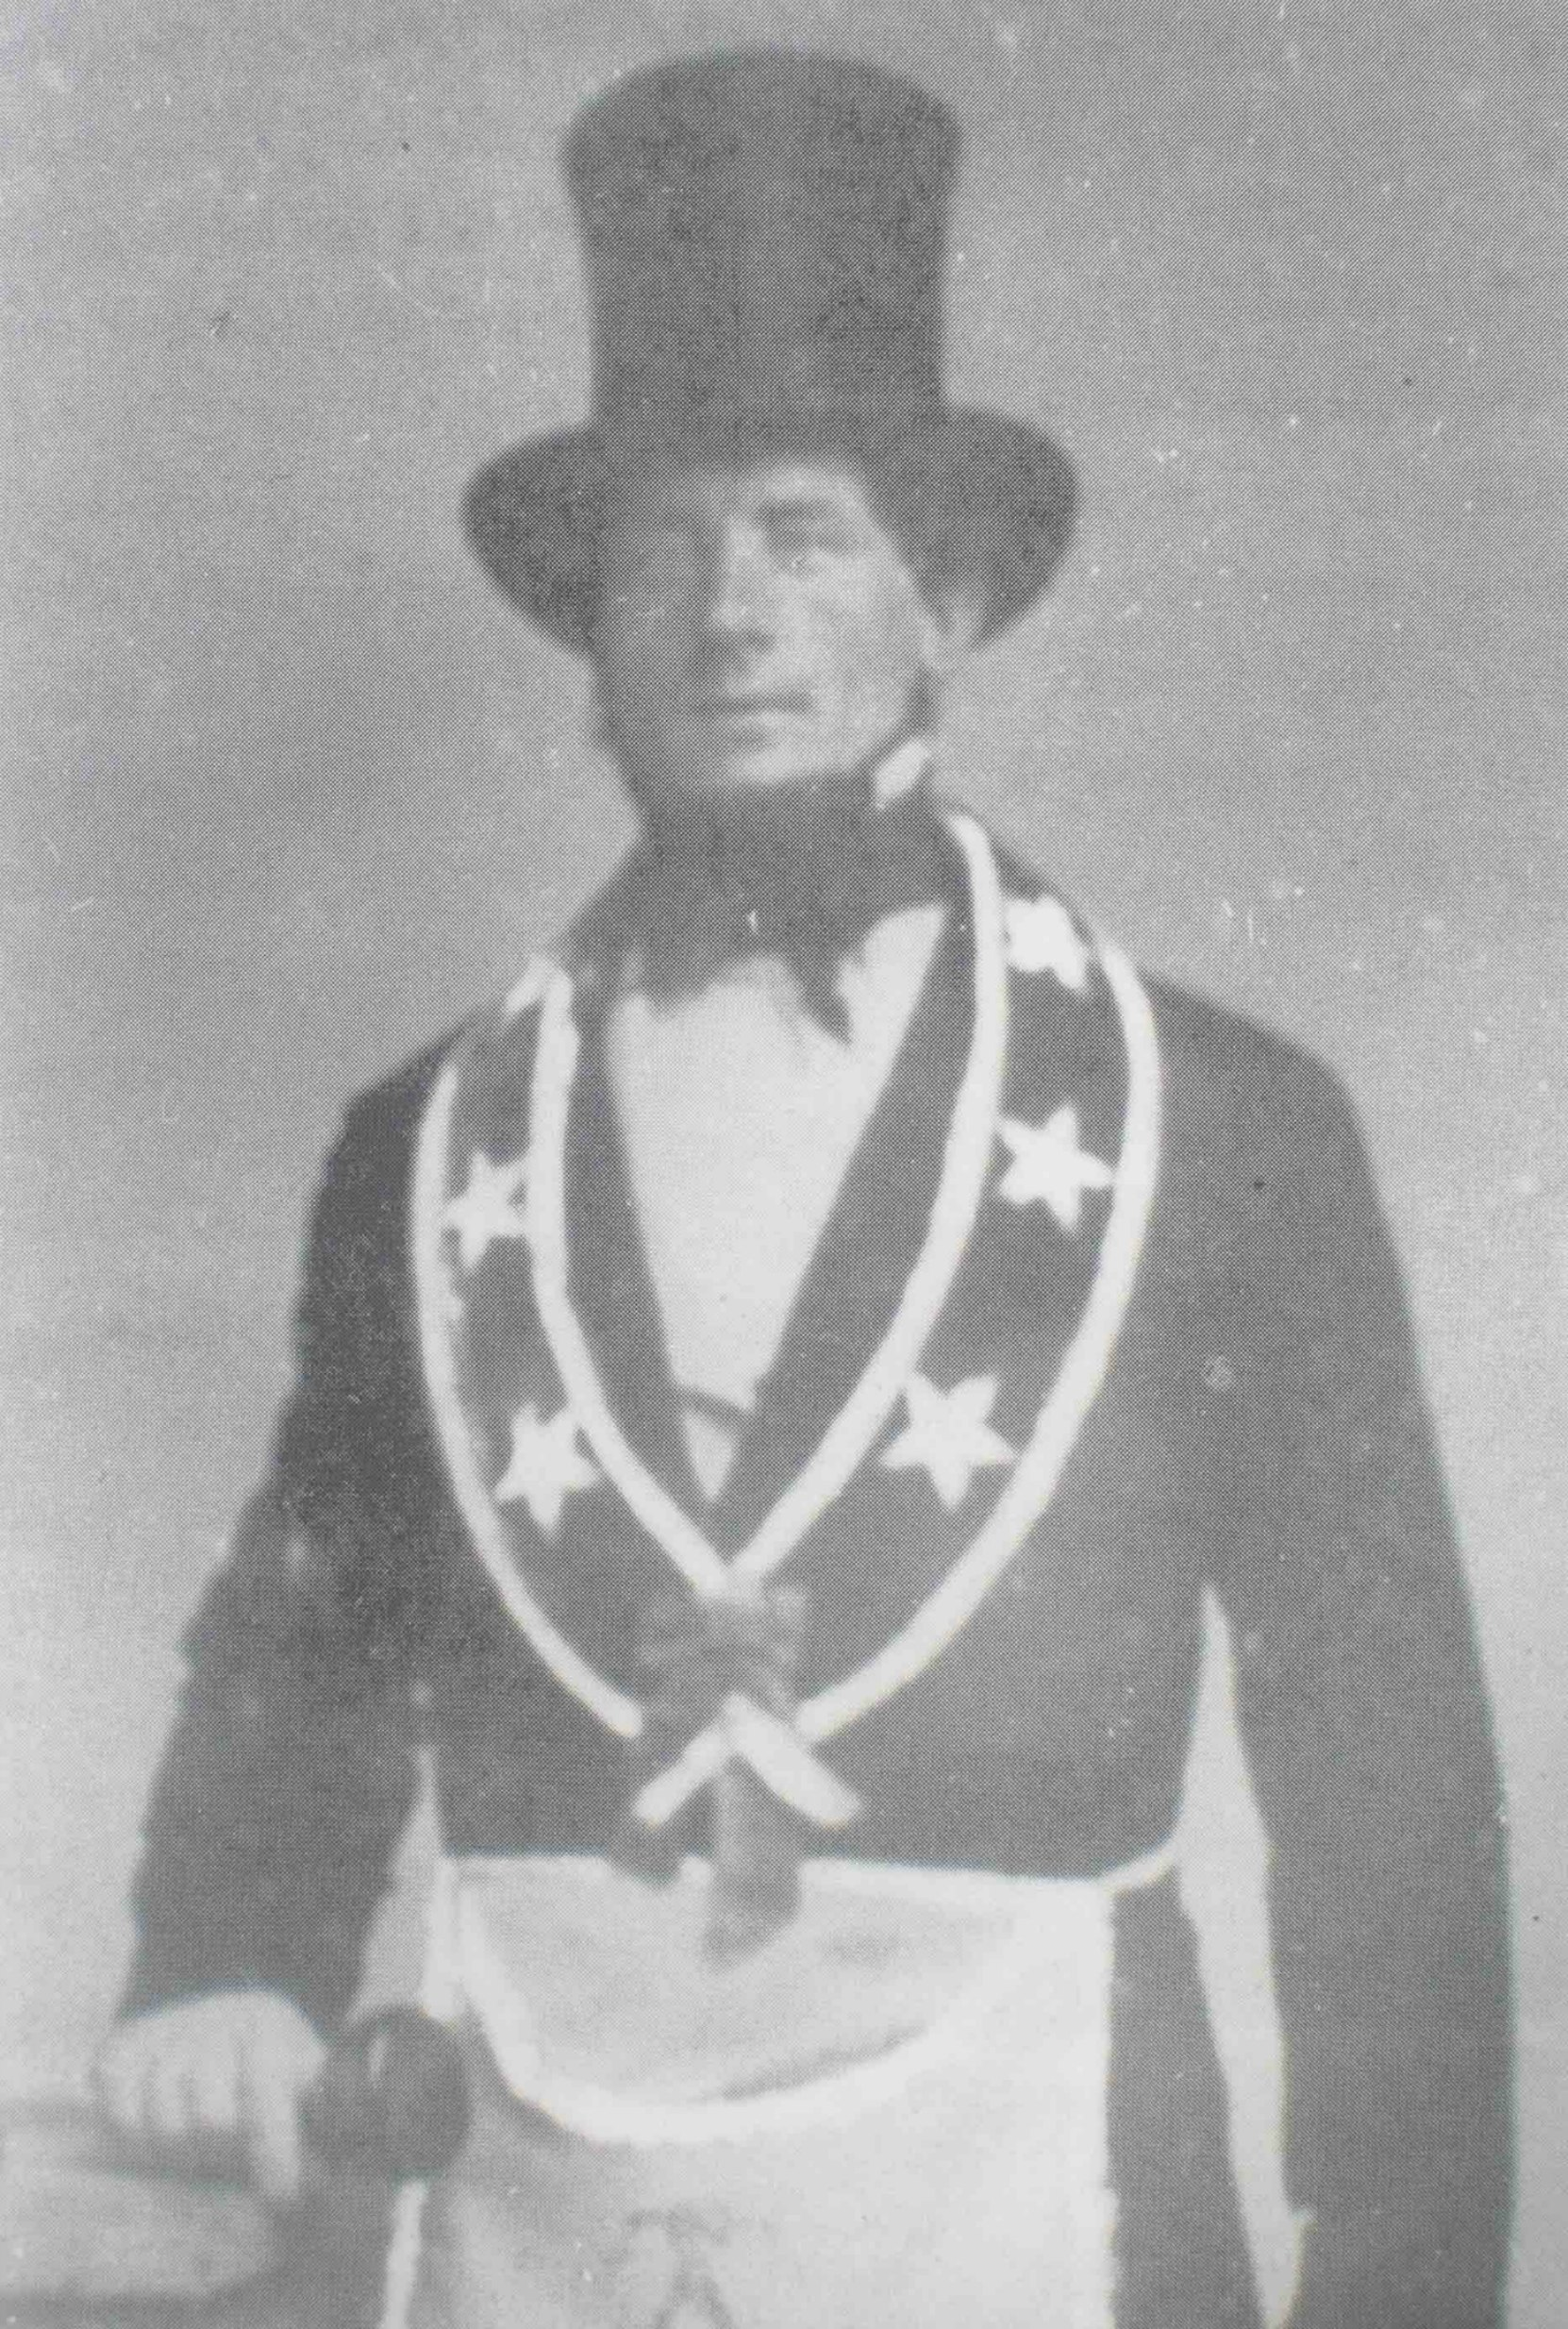 Richard Lewis, circa 1855, in California Masonic regalia.